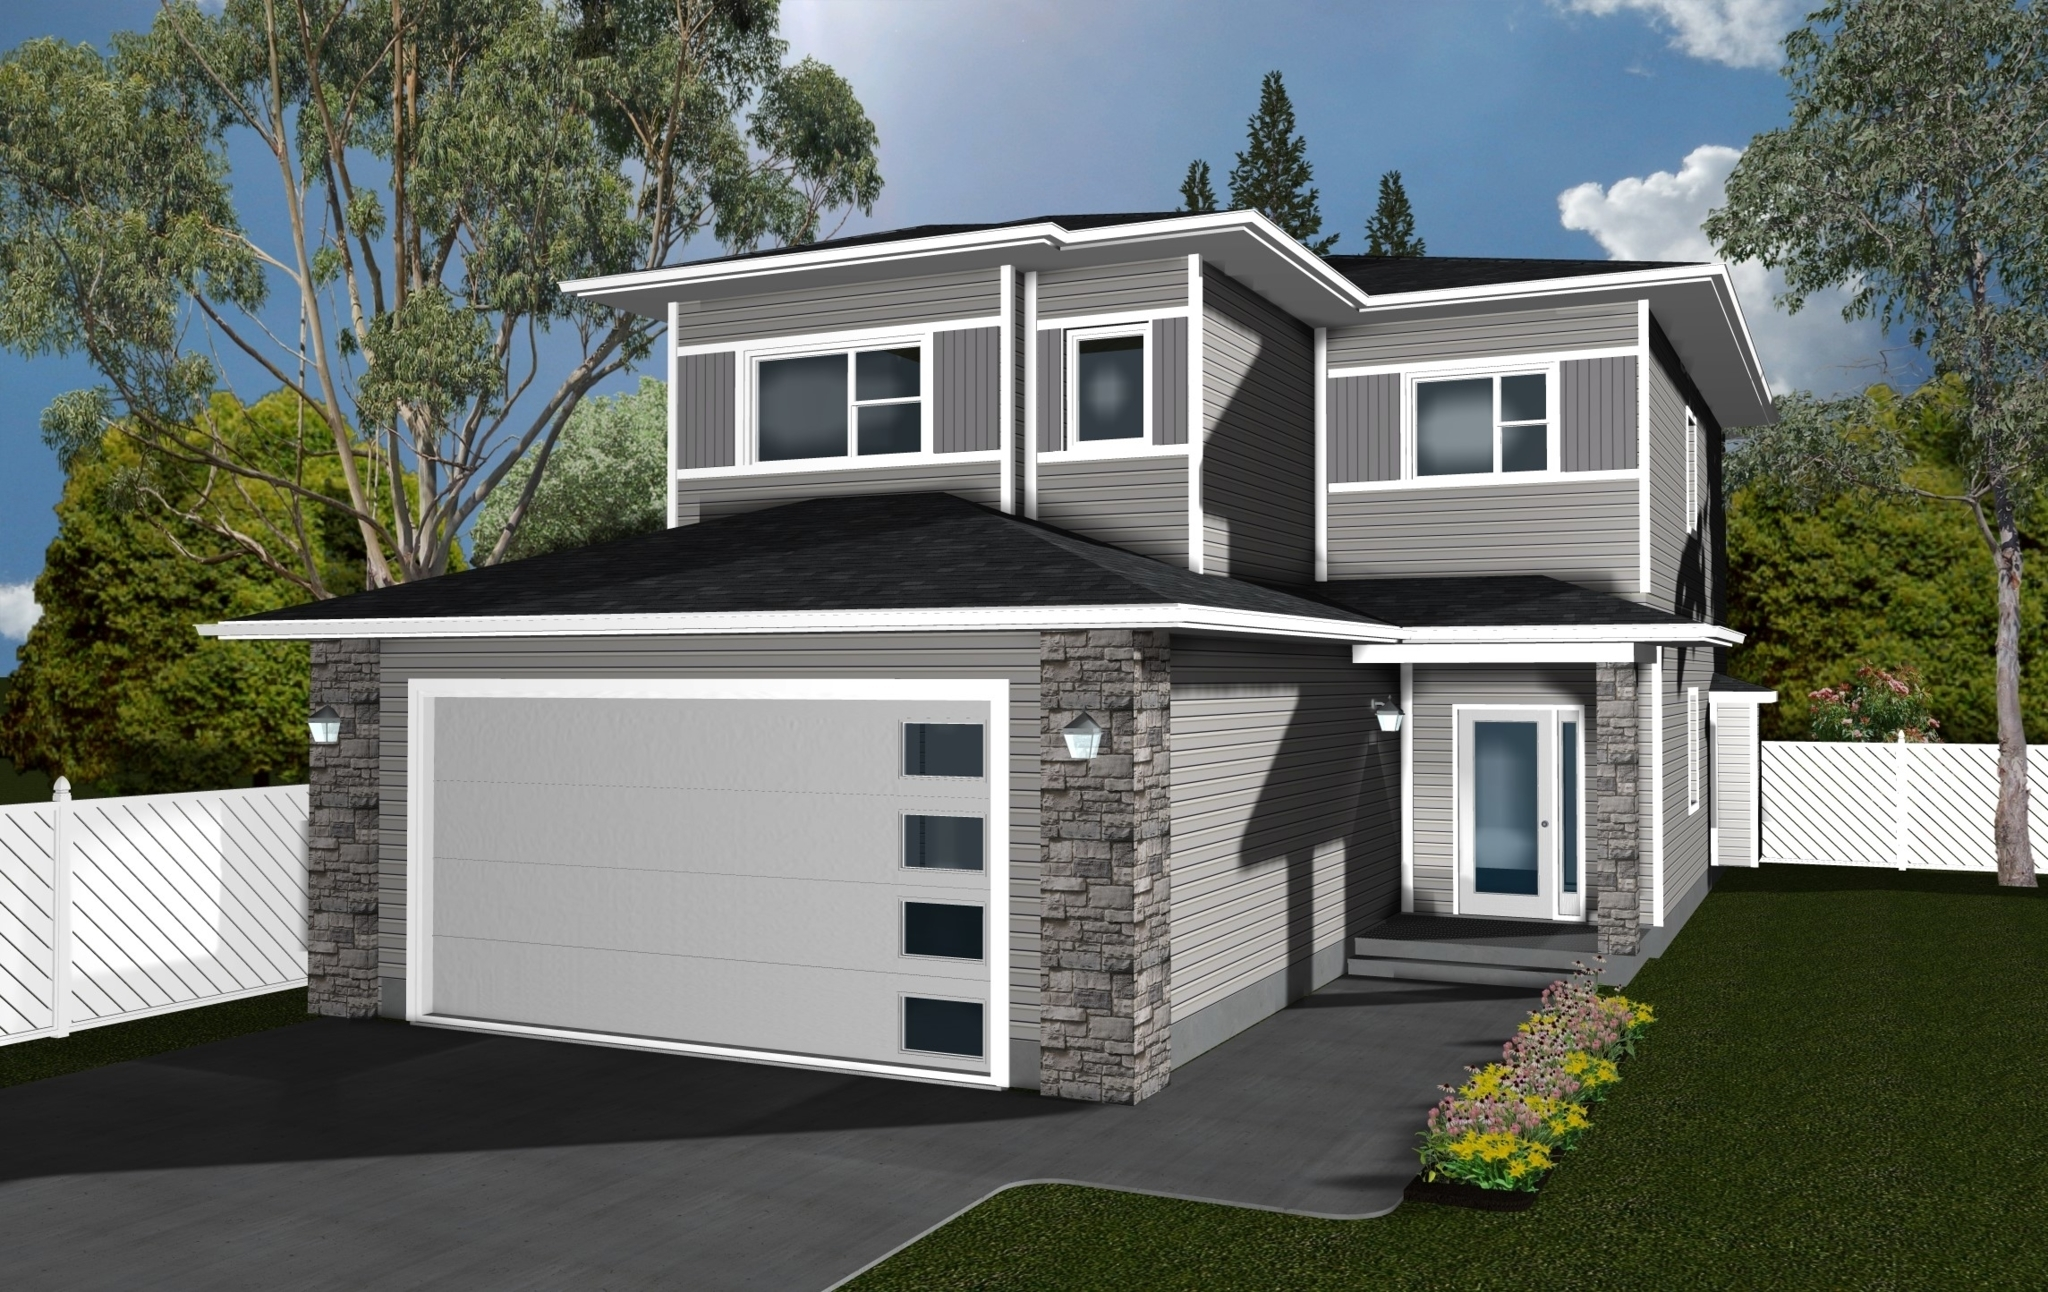 D M D Architectural Drafting Red Deer (403)342-2375